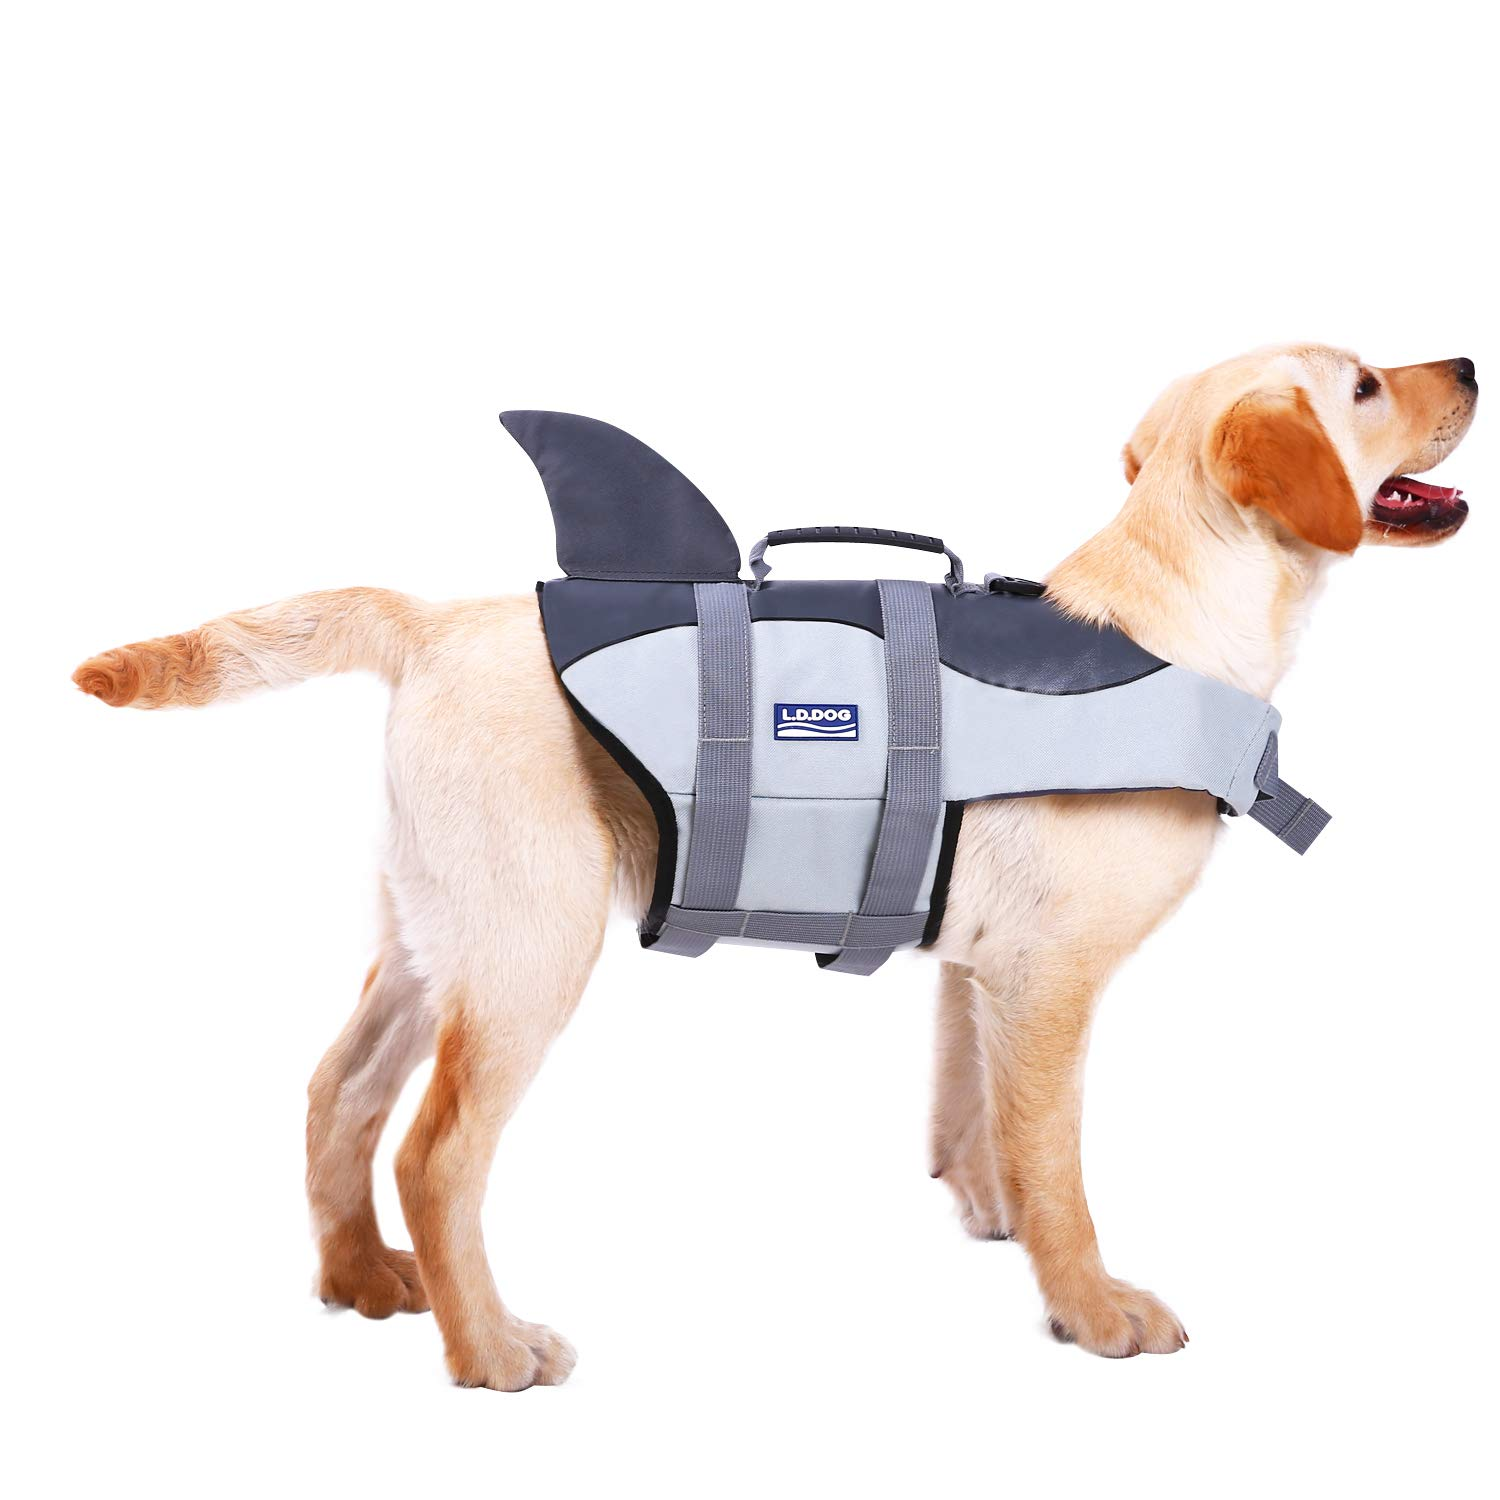 ASENKU Dog Life Jacket Ripstop Pet Floatation Vest Saver Swimsuit Preserver for Water Safety at The Pool, Beach, Boating, XL, Grey by ASENKU